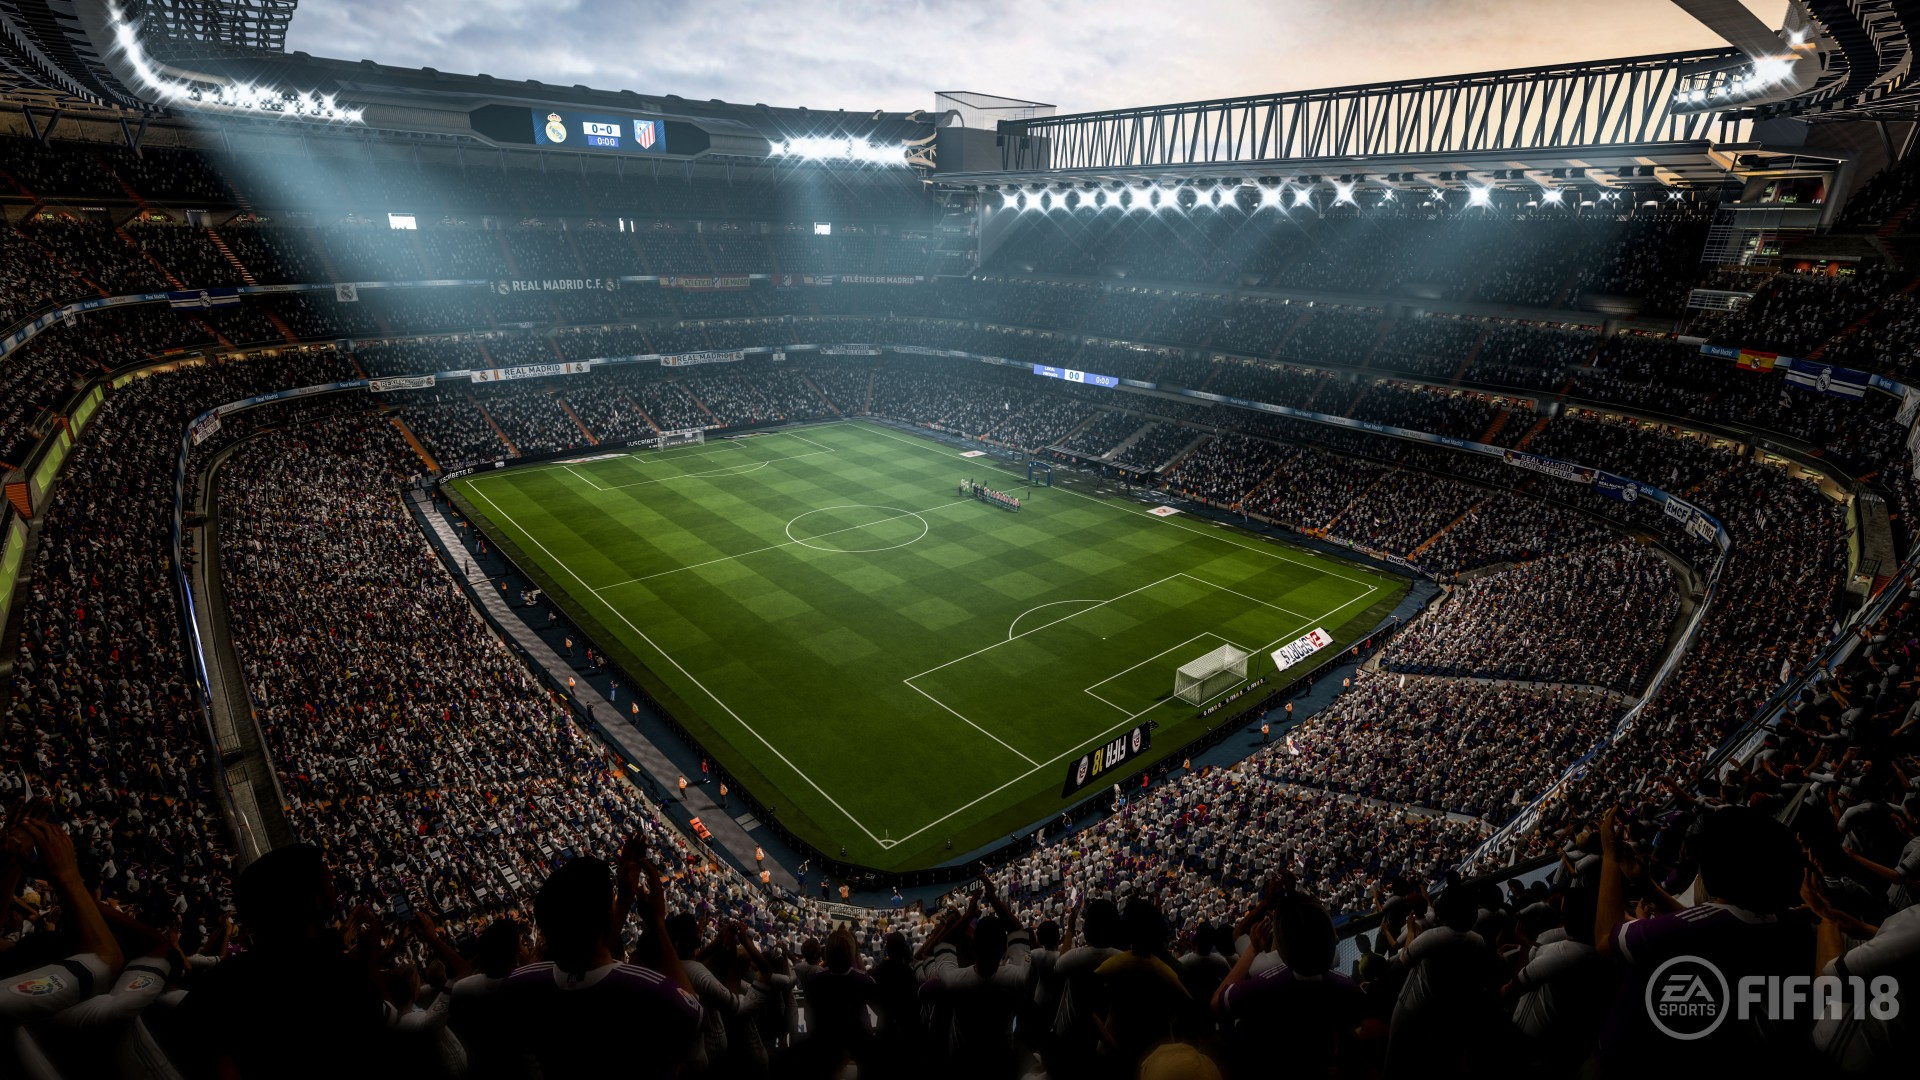 Inspirational Iphone Wallpapers Hd Fifa 18 Soccer Video Game Stadium 4k 8k Wallpapers Hd